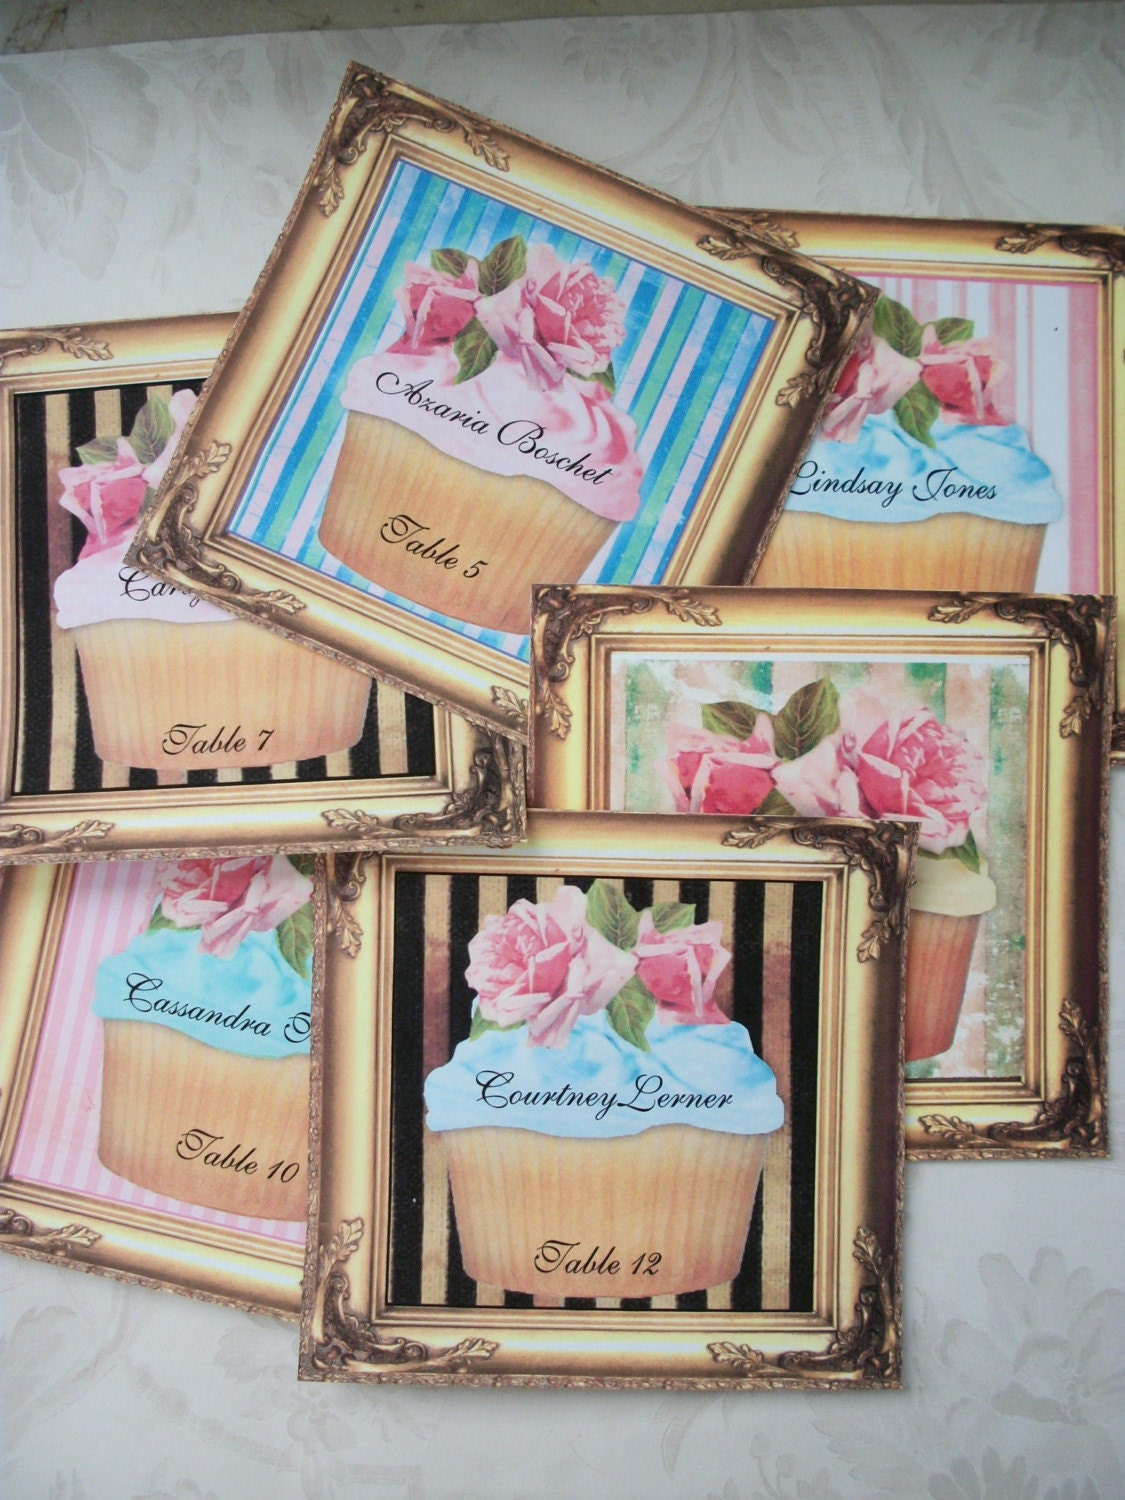 CUPCAKES - NAME CARDS - PLACECARDS - SEATING CARDS - PERSONALIZED - PERFECT FOR A BABY SHOWER, TEA PARTY, NOTECARDS ETC - COMES WITH AN ORGANZA GIFT BAG C28